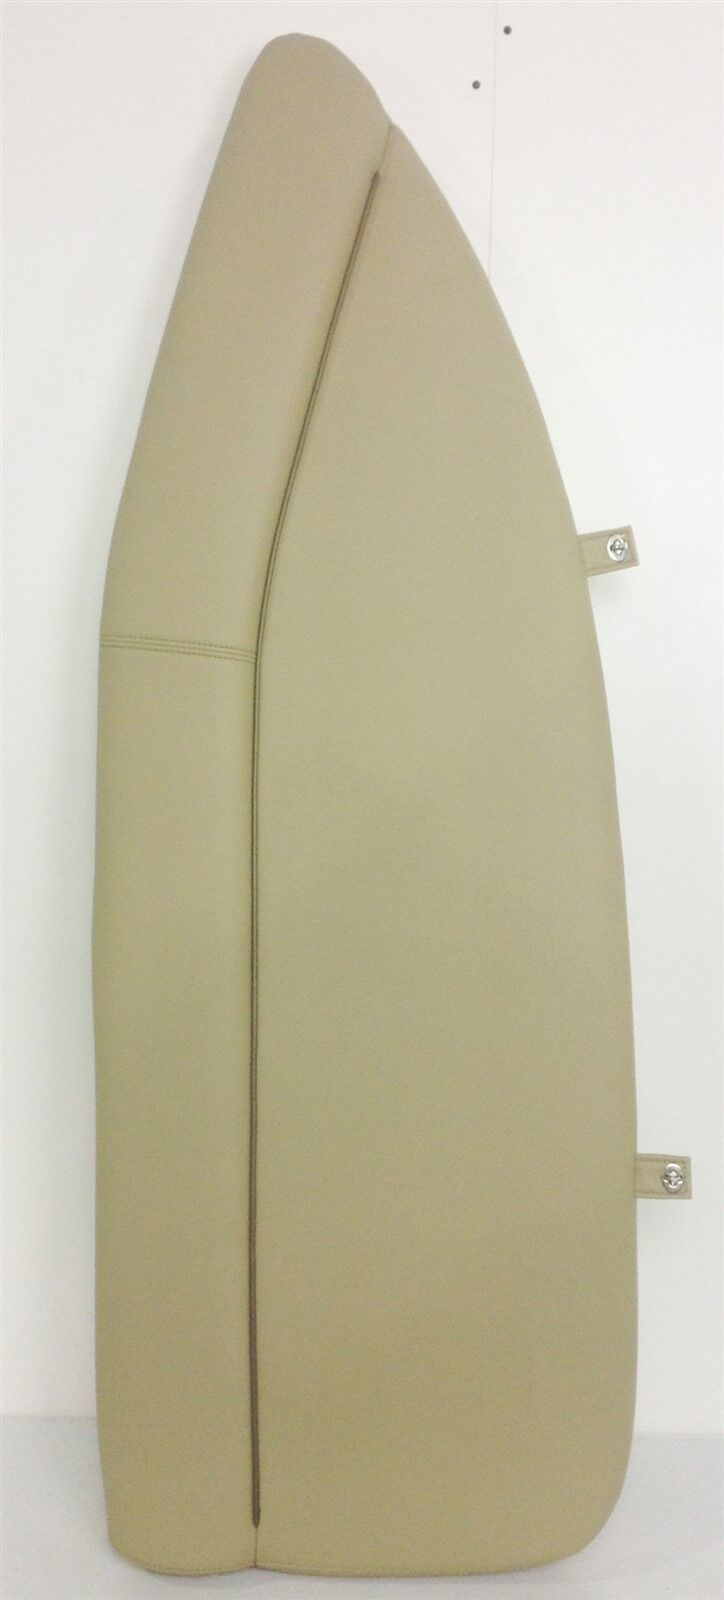 NEW Sportsman Boats Bow Cushion Starboard Tan W/ Brown Accent Strip And Snaps